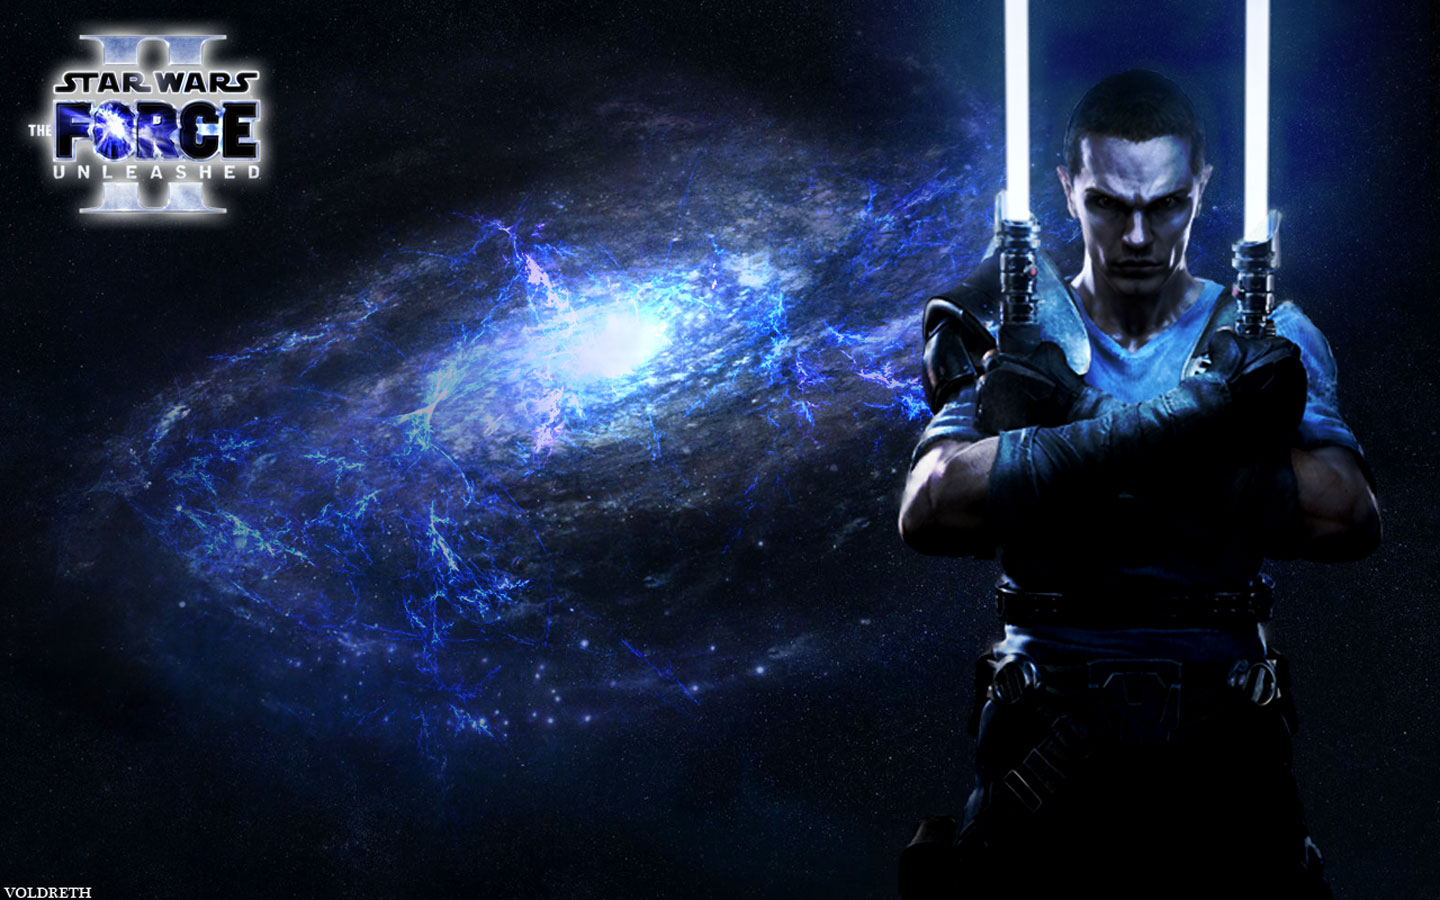 Free Download Wallpapers Sta Wars The Force Unleashed 2 Starkiller Wallpaper 1440x900 For Your Desktop Mobile Tablet Explore 49 Star Wars Starkiller Wallpaper Star Wars Starkiller Wallpaper Star Wars